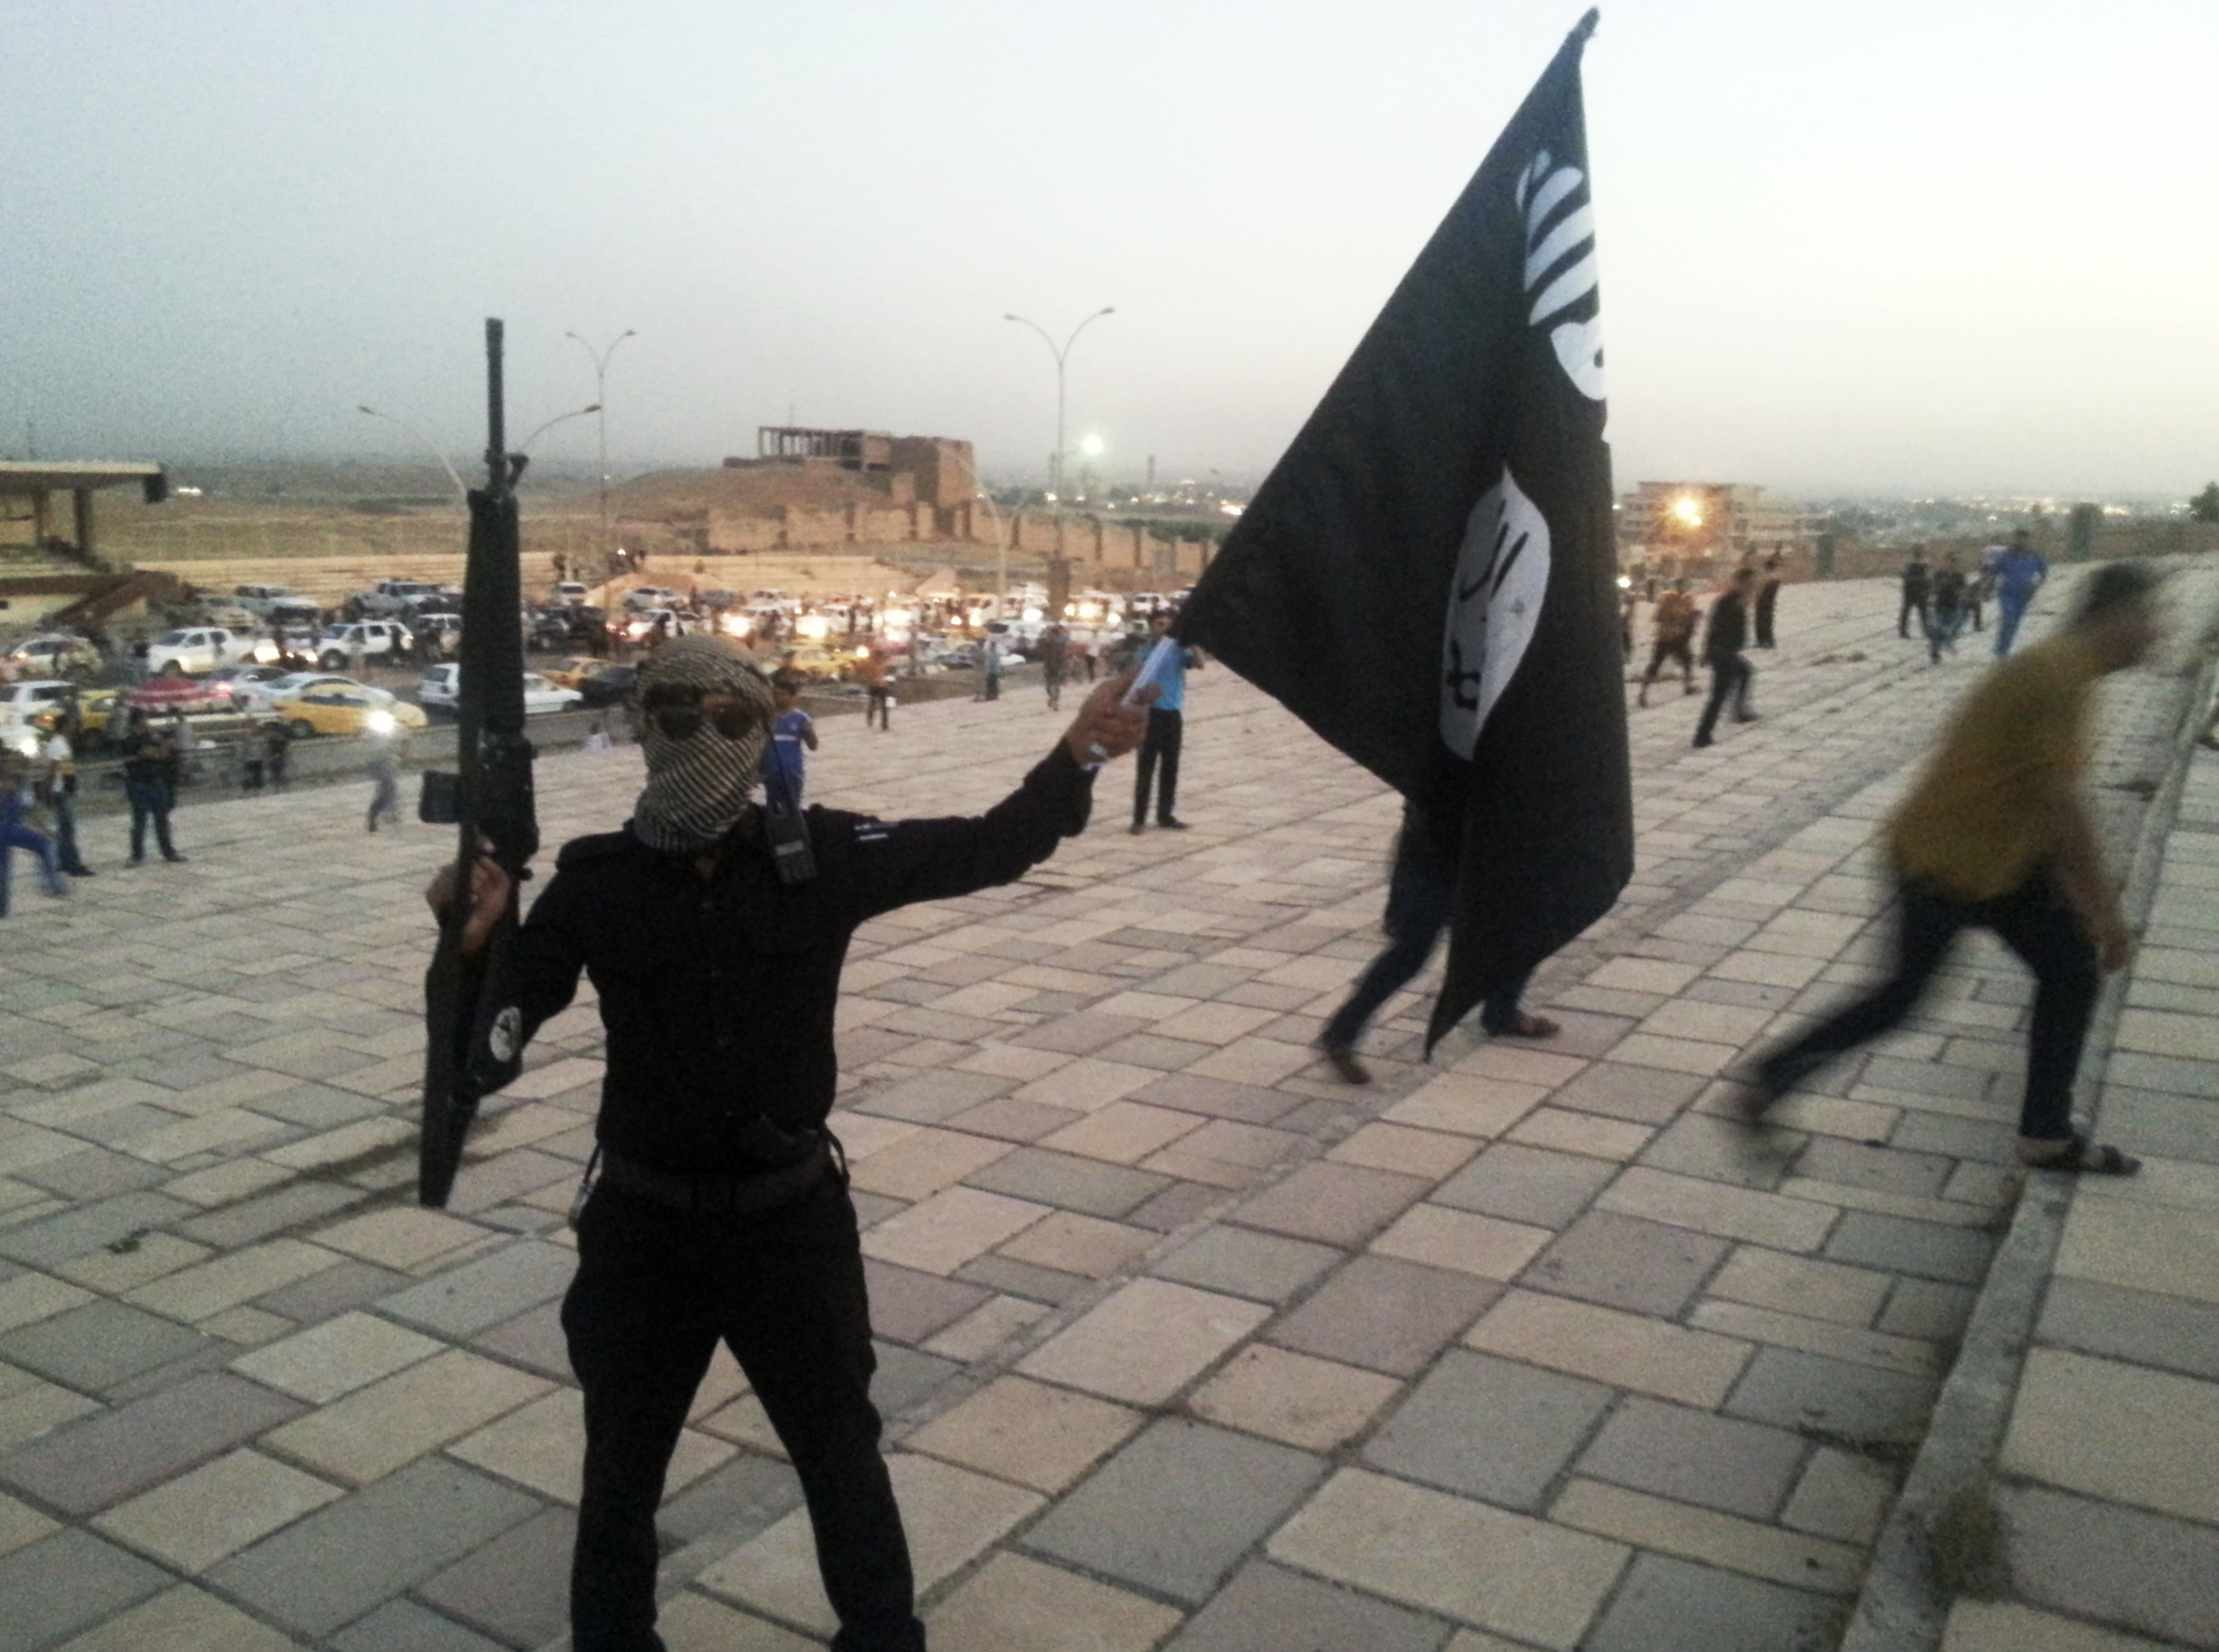 A fighter of the Islamic State of Iraq and Greater Syria (ISIS) holds an ISIS flag and a weapon on a street in the city of Mosul, Iraq, on June 23, 2014